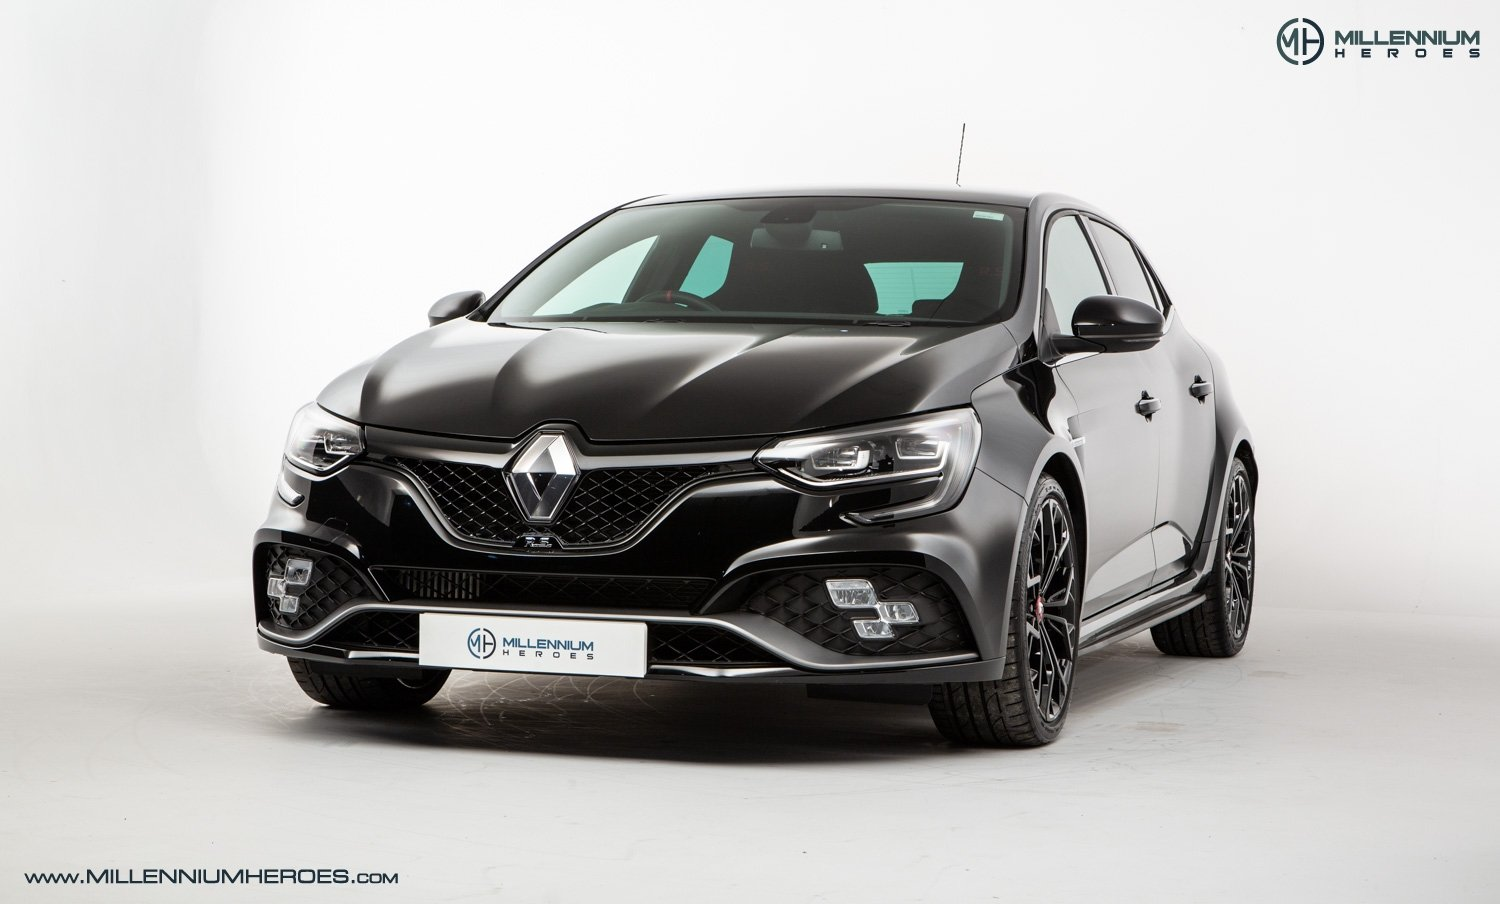 2019 RENAULT MEGANE R.S.280  For Sale (picture 1 of 16)